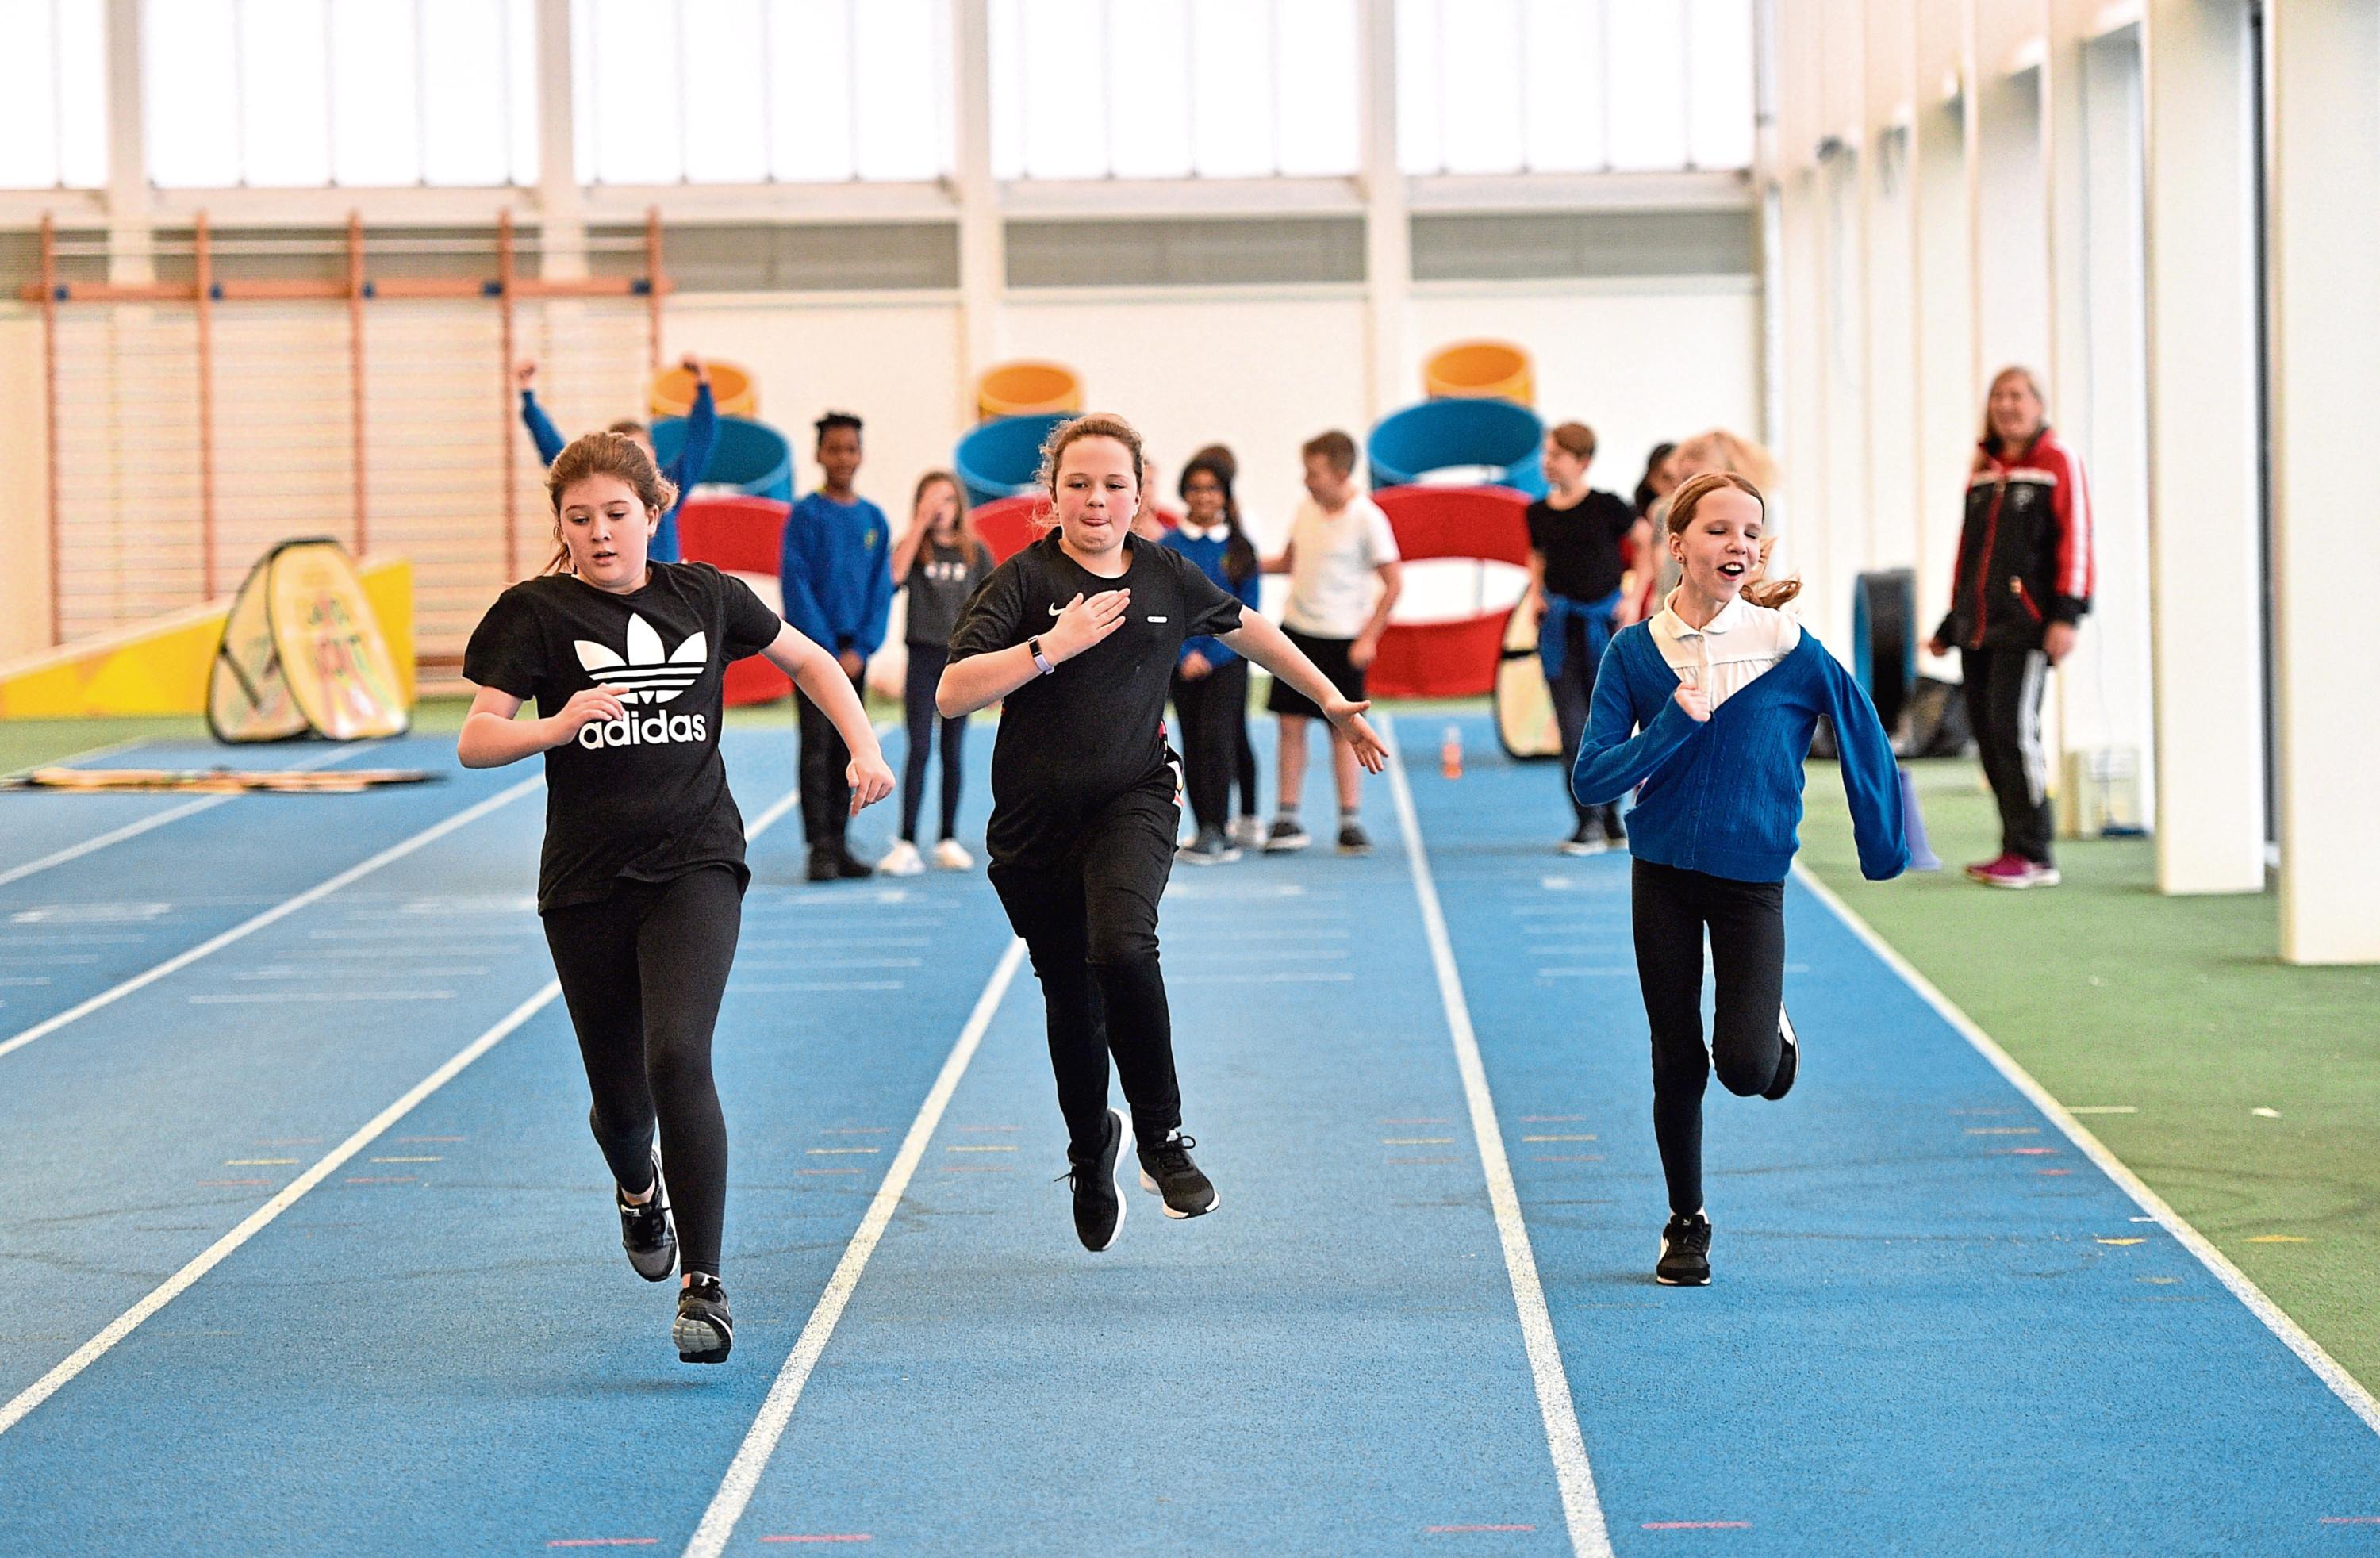 BBC Festival of Sport kicks off with school children taking part in various tasks at Aberdeen Sports Village.